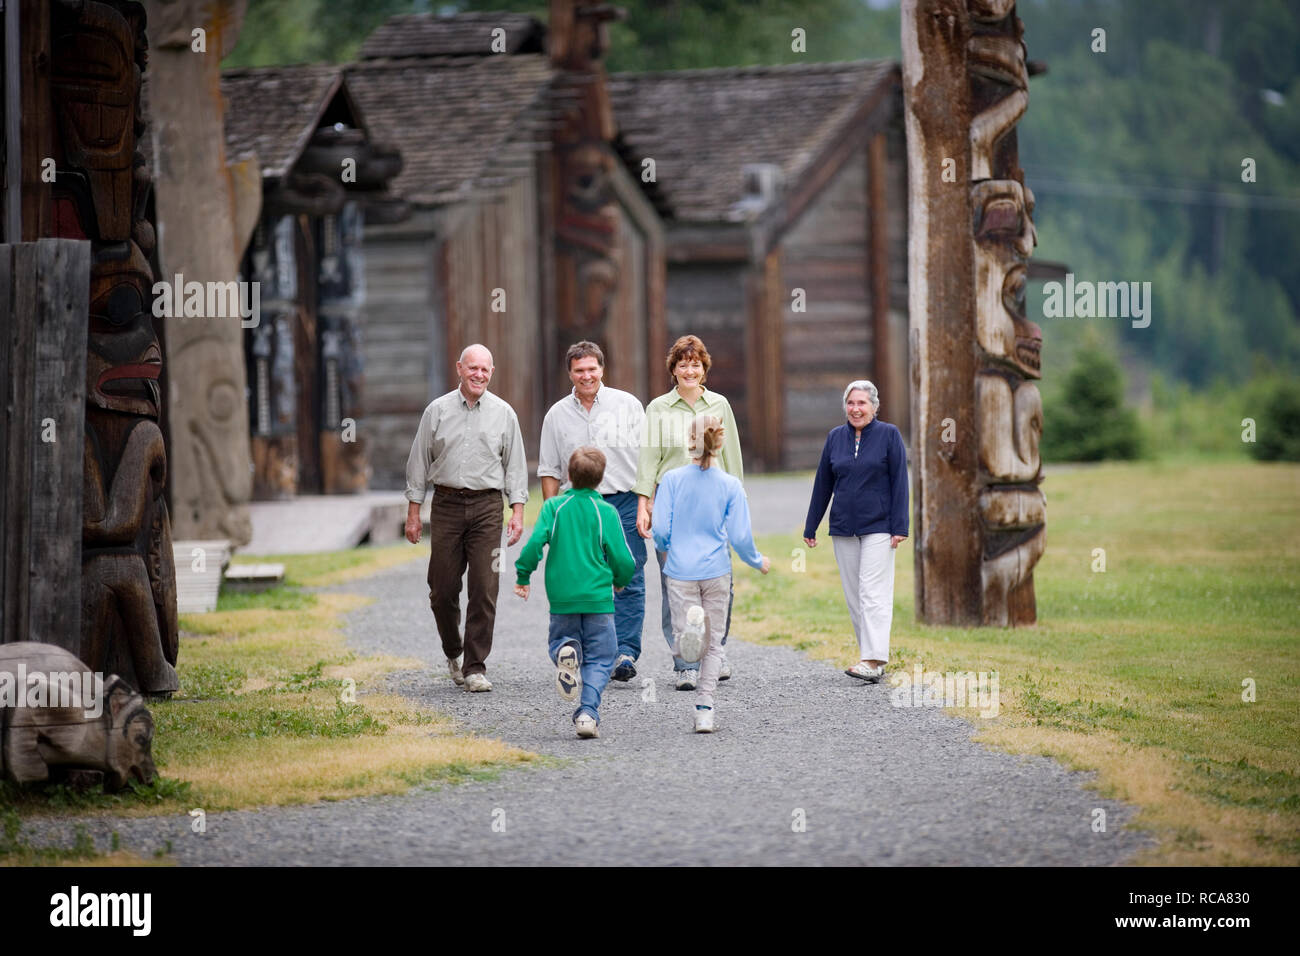 Two children running towards their parents and grandparents. - Stock Image